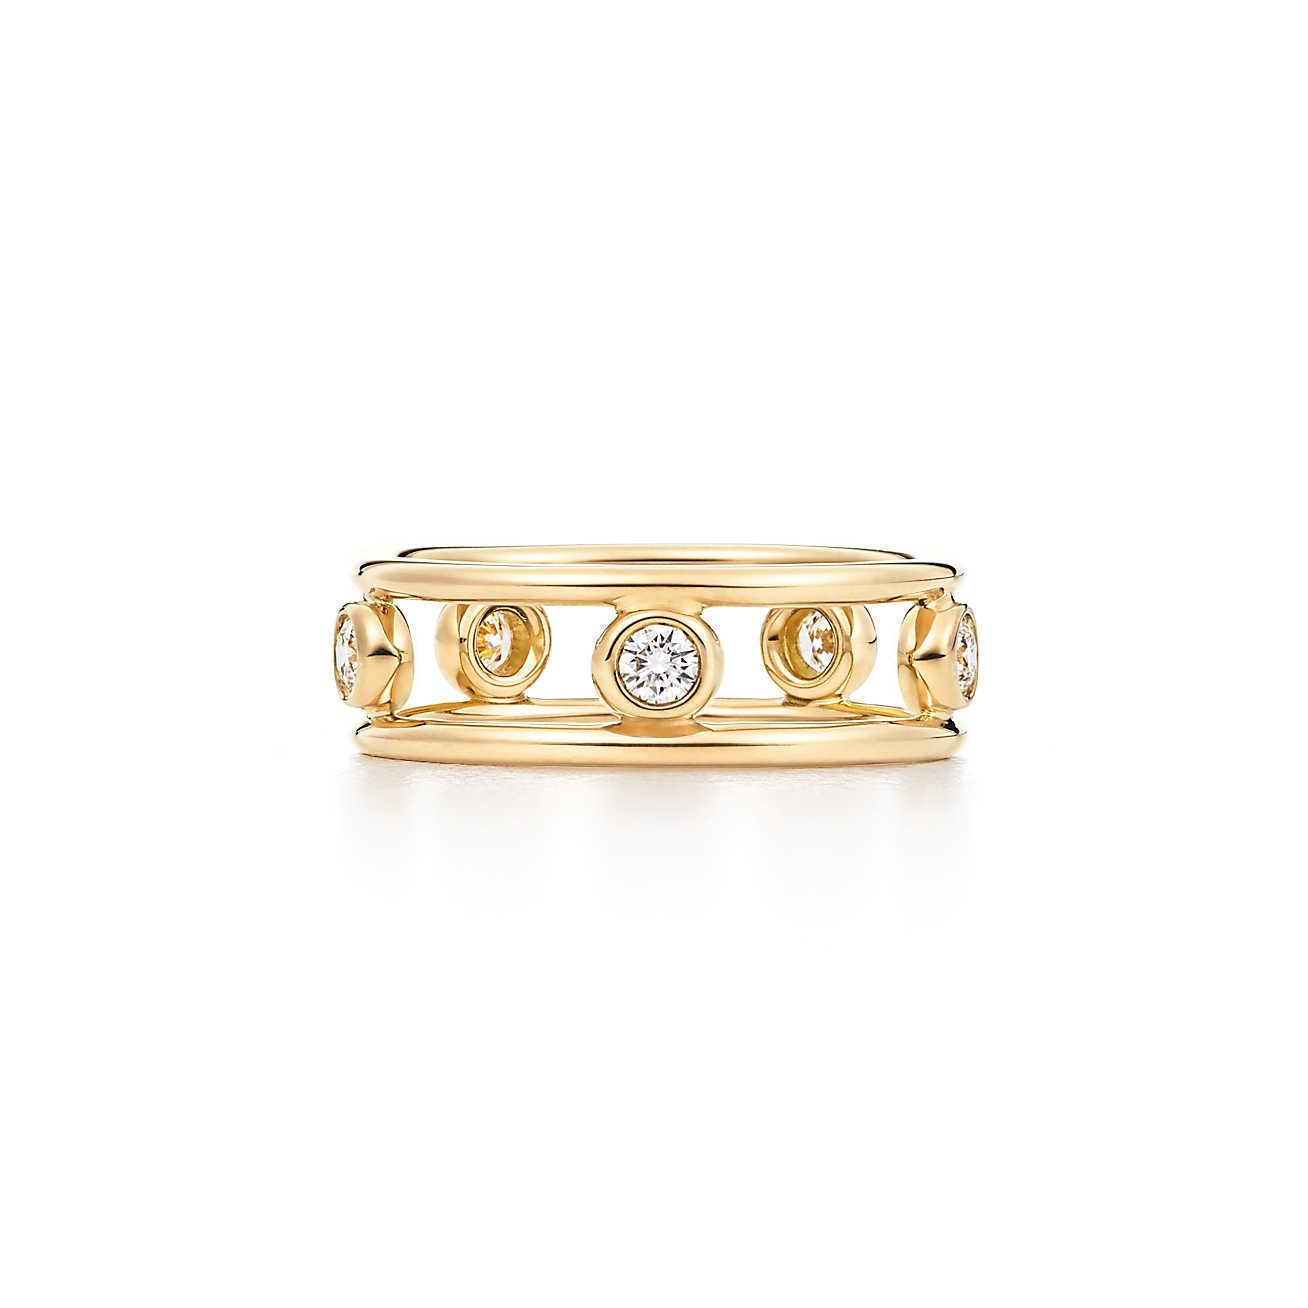 Elsa Peretti® Diamonds by the Yard® ring in 18k gold with diamonds.